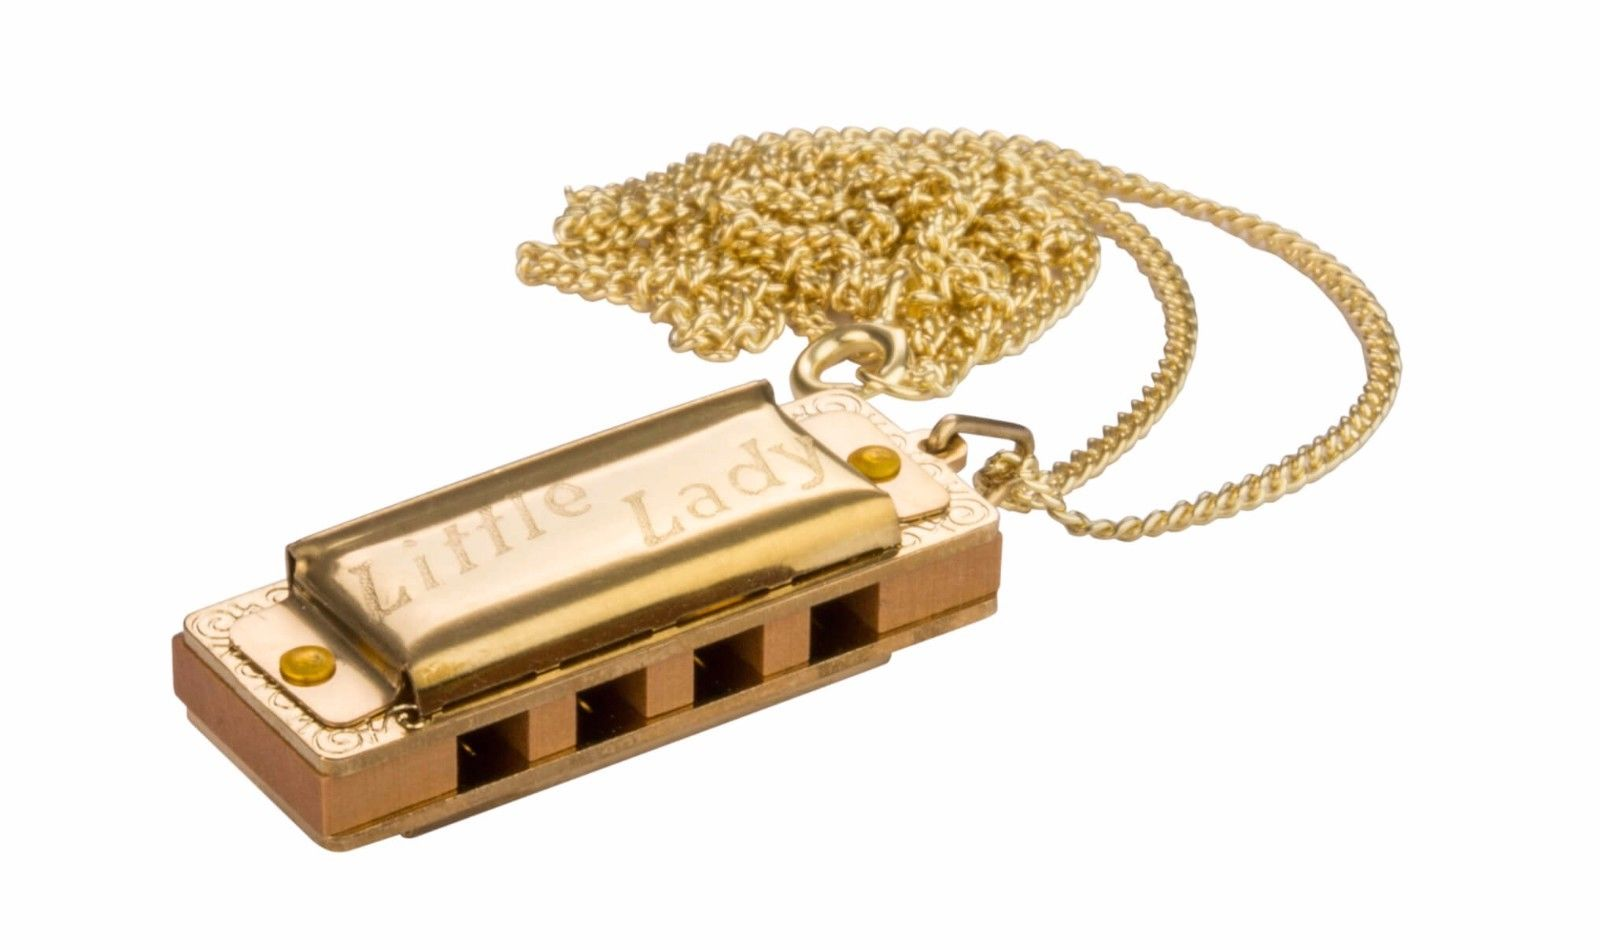 New Hohner 110/8 Little Lady Gold Plated Miniature Diatonic Harmonica Necklace with Chain Key of C